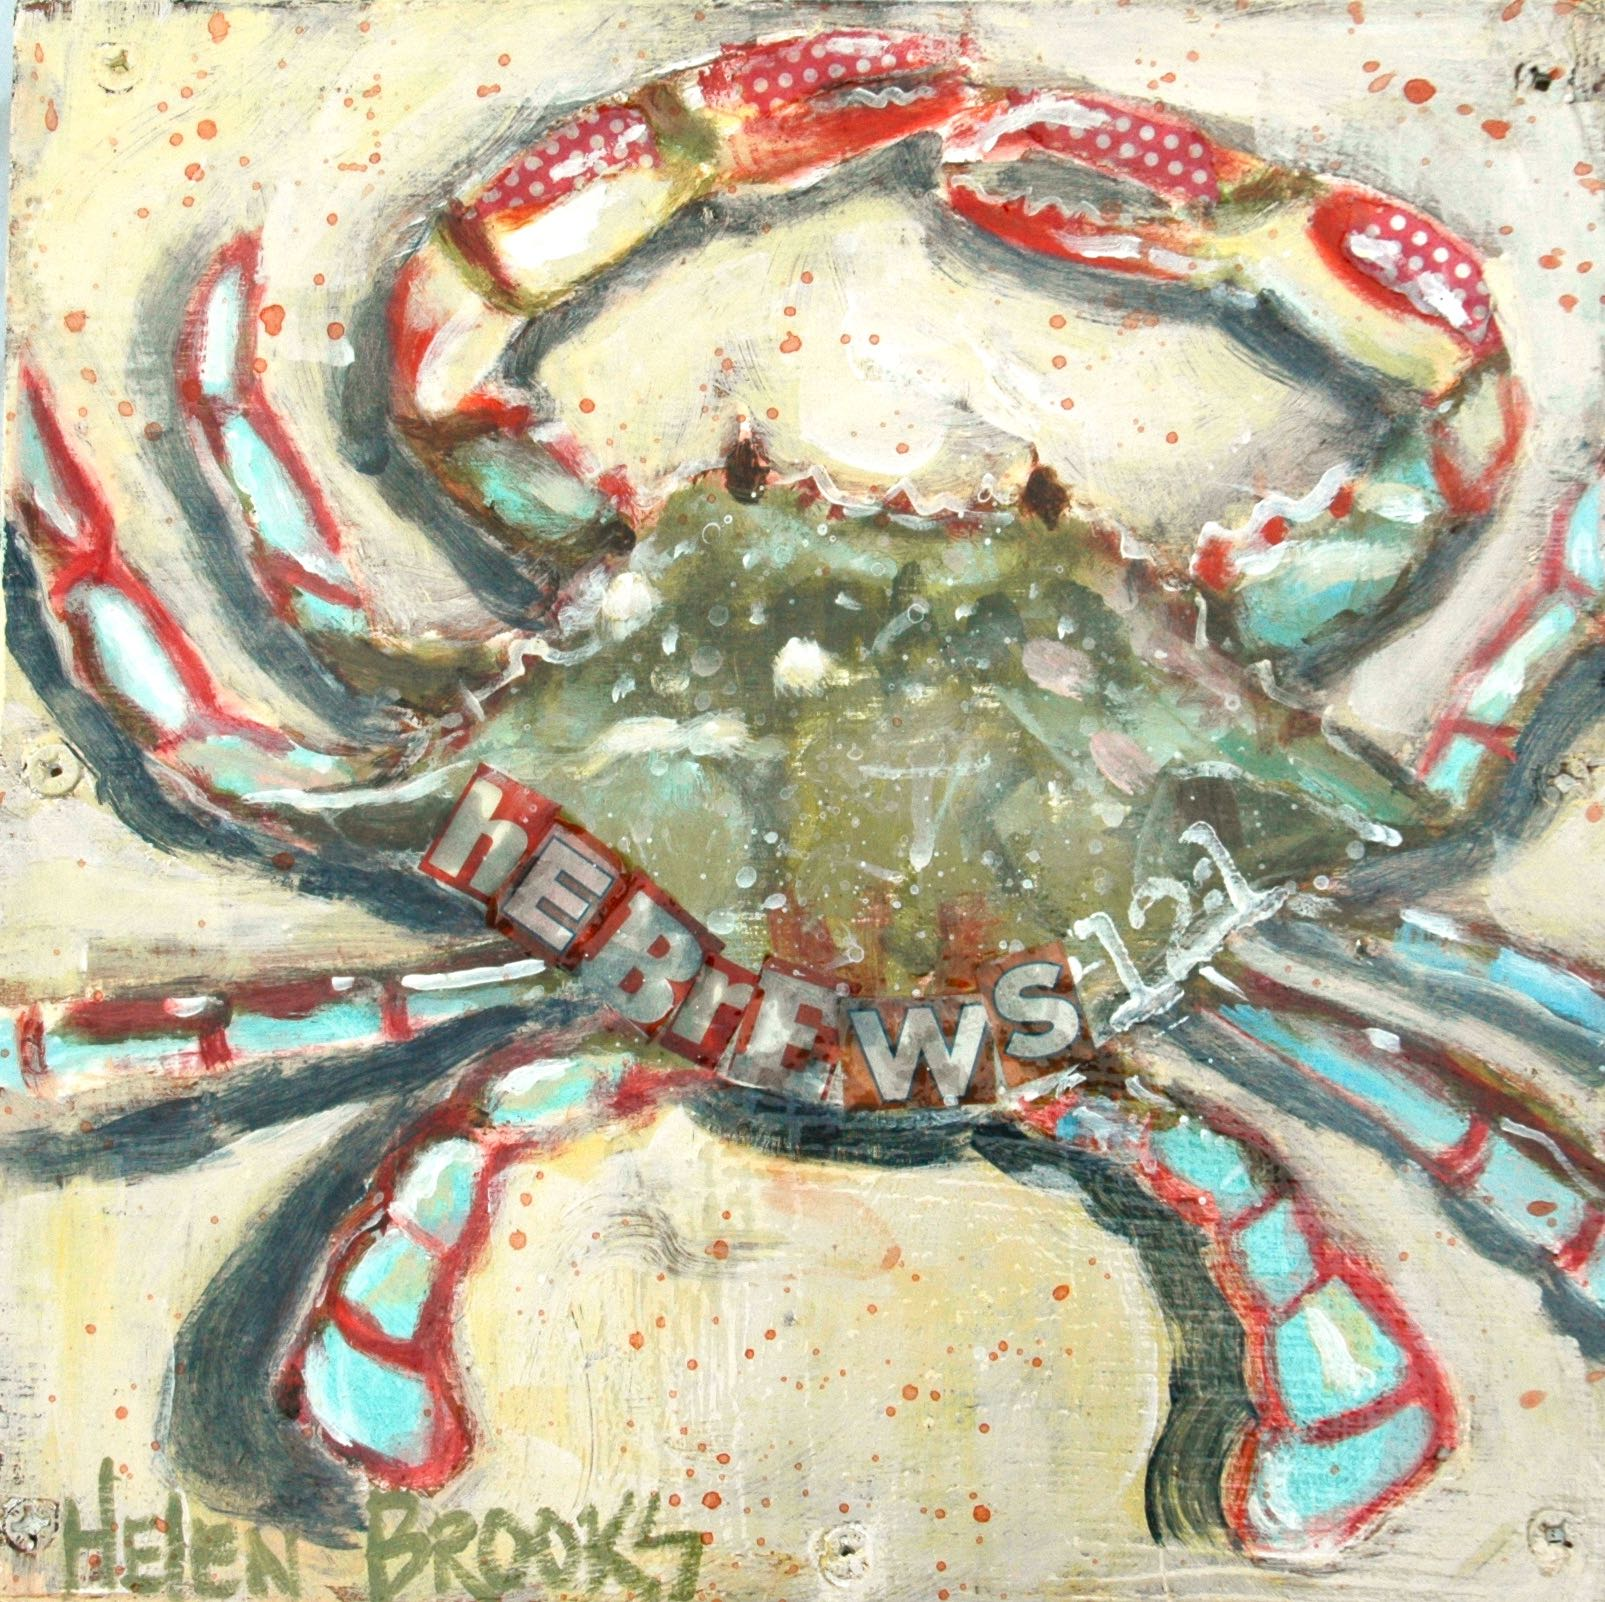 molting-crab-sanctification-hebrews-beach+art-christian+art